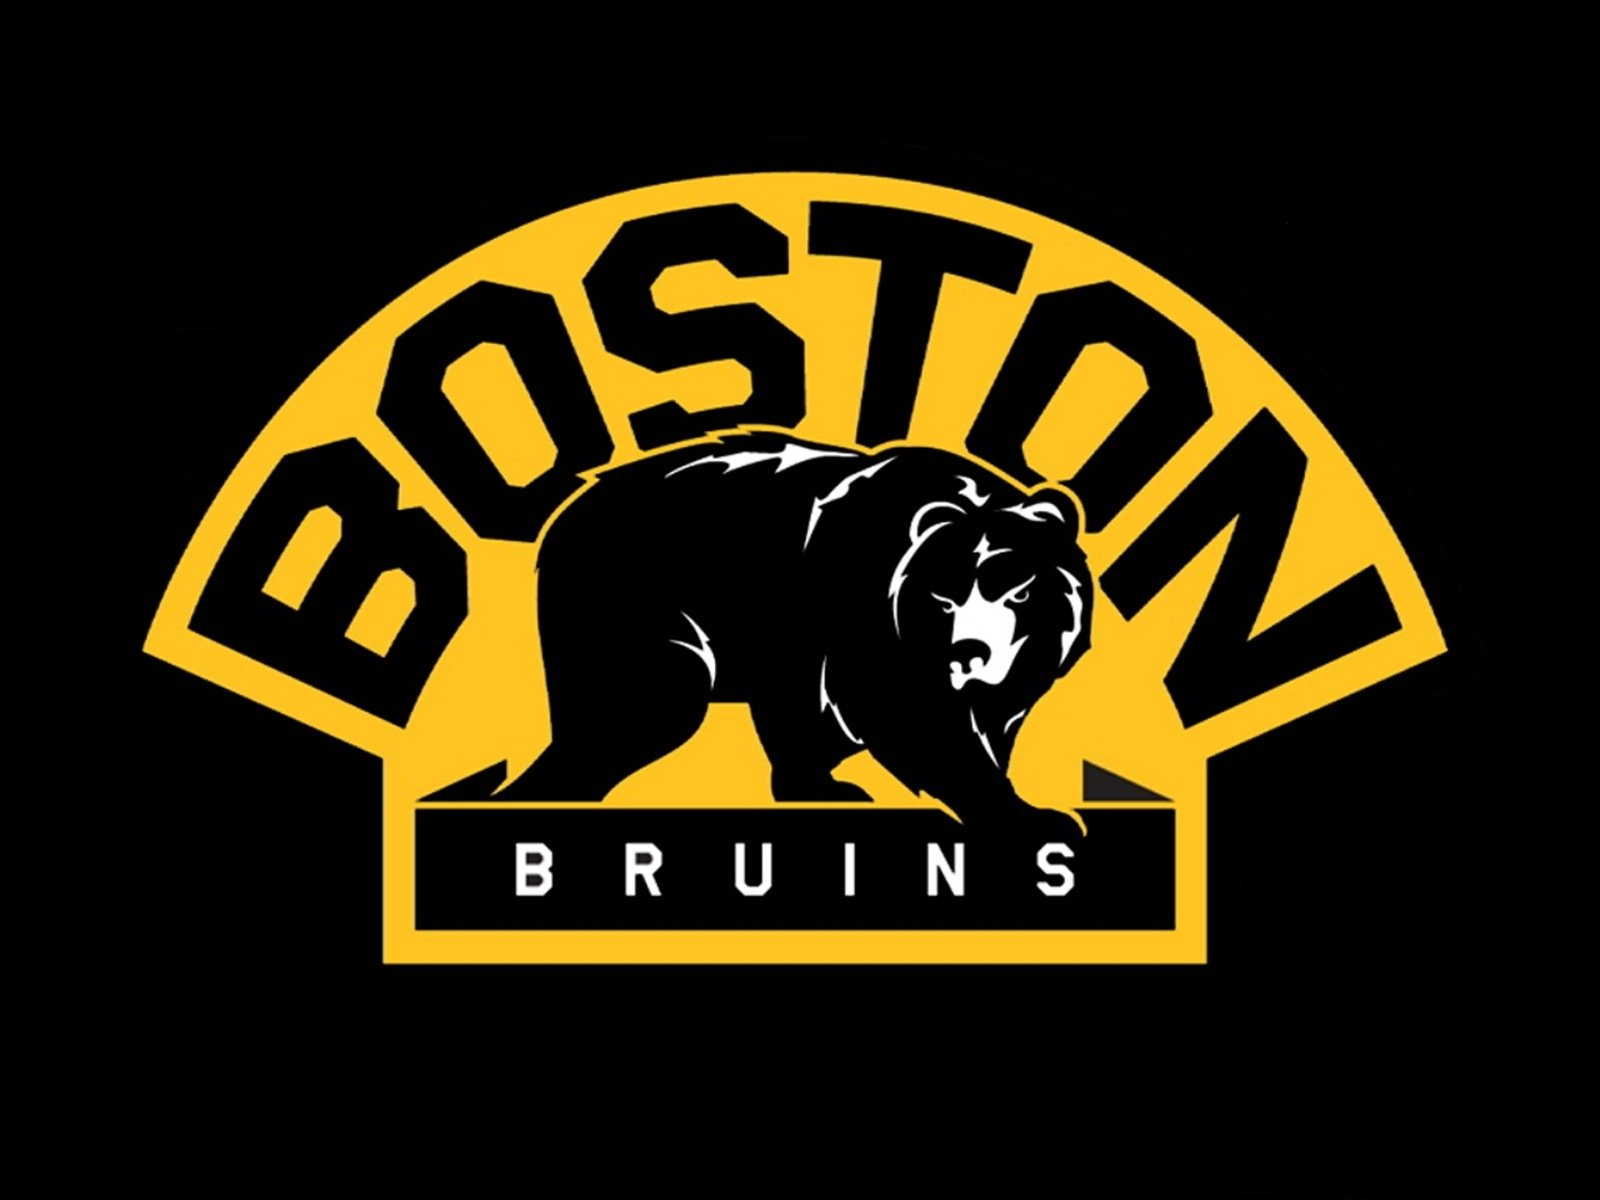 Boston Bruins HD Backgrounds | PixelsTalk Net